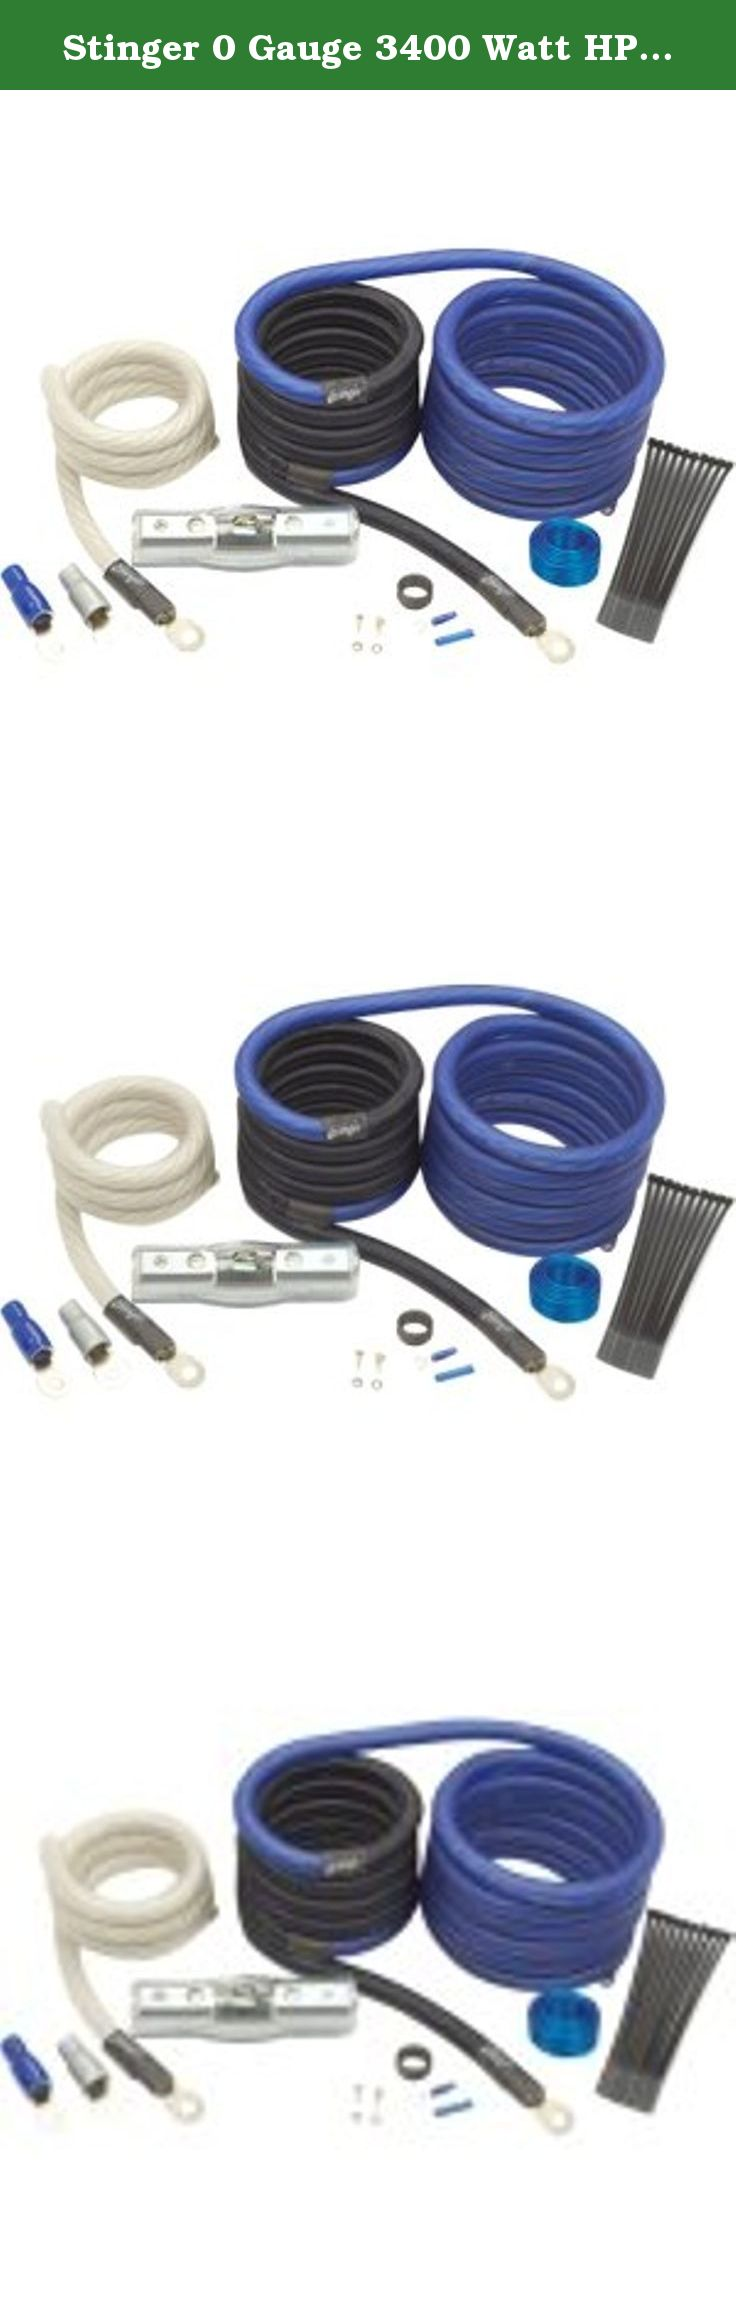 Stinger 0 Gauge 3400 Watt Hpm Power Amplifier Wiring Kit This Amp Installation Ofc Ebay Includes These Items